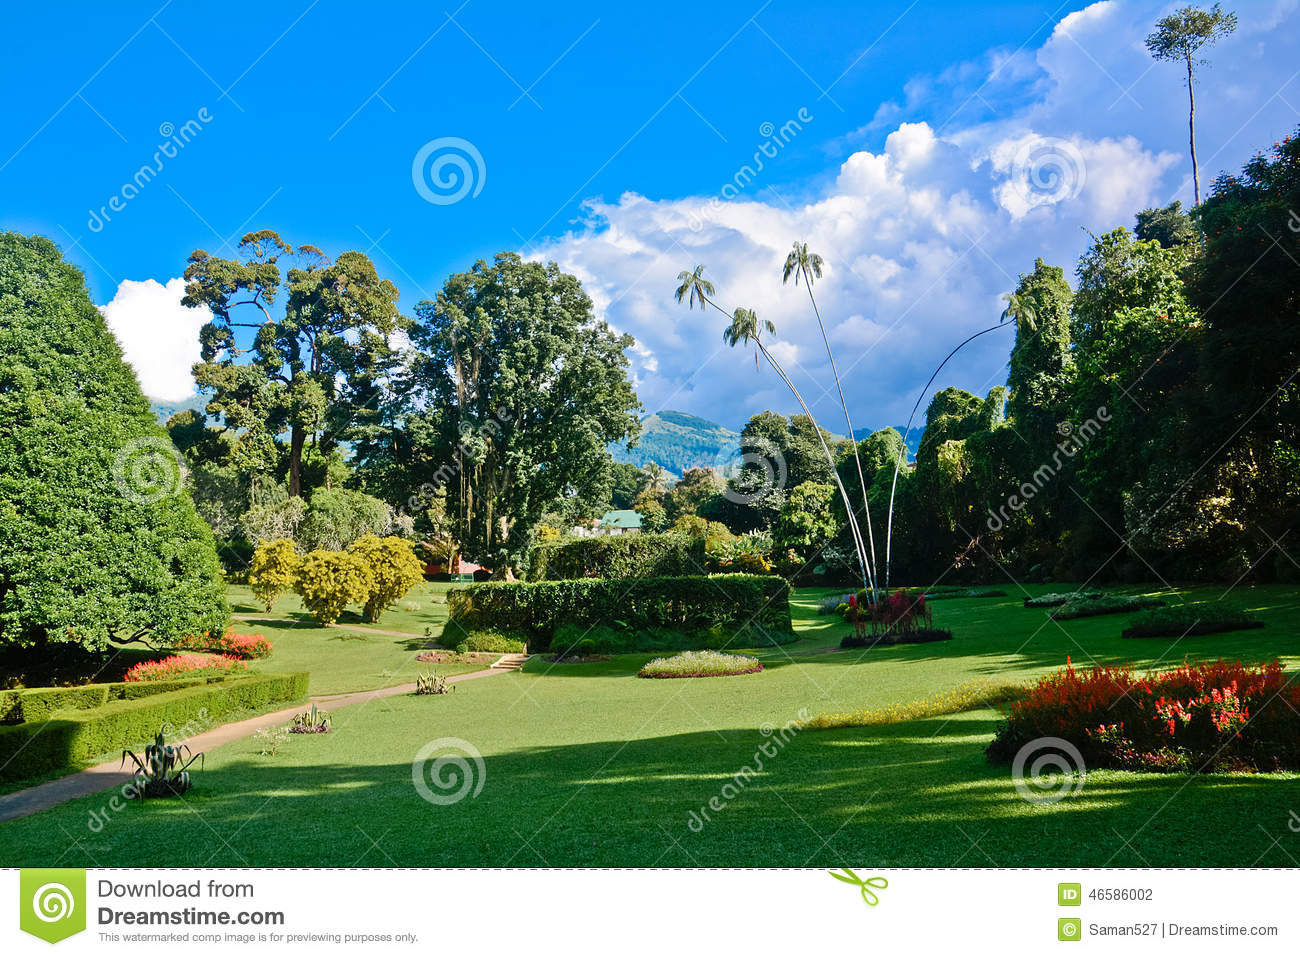 Peradeniya Stock Photos, Images, & Pictures.